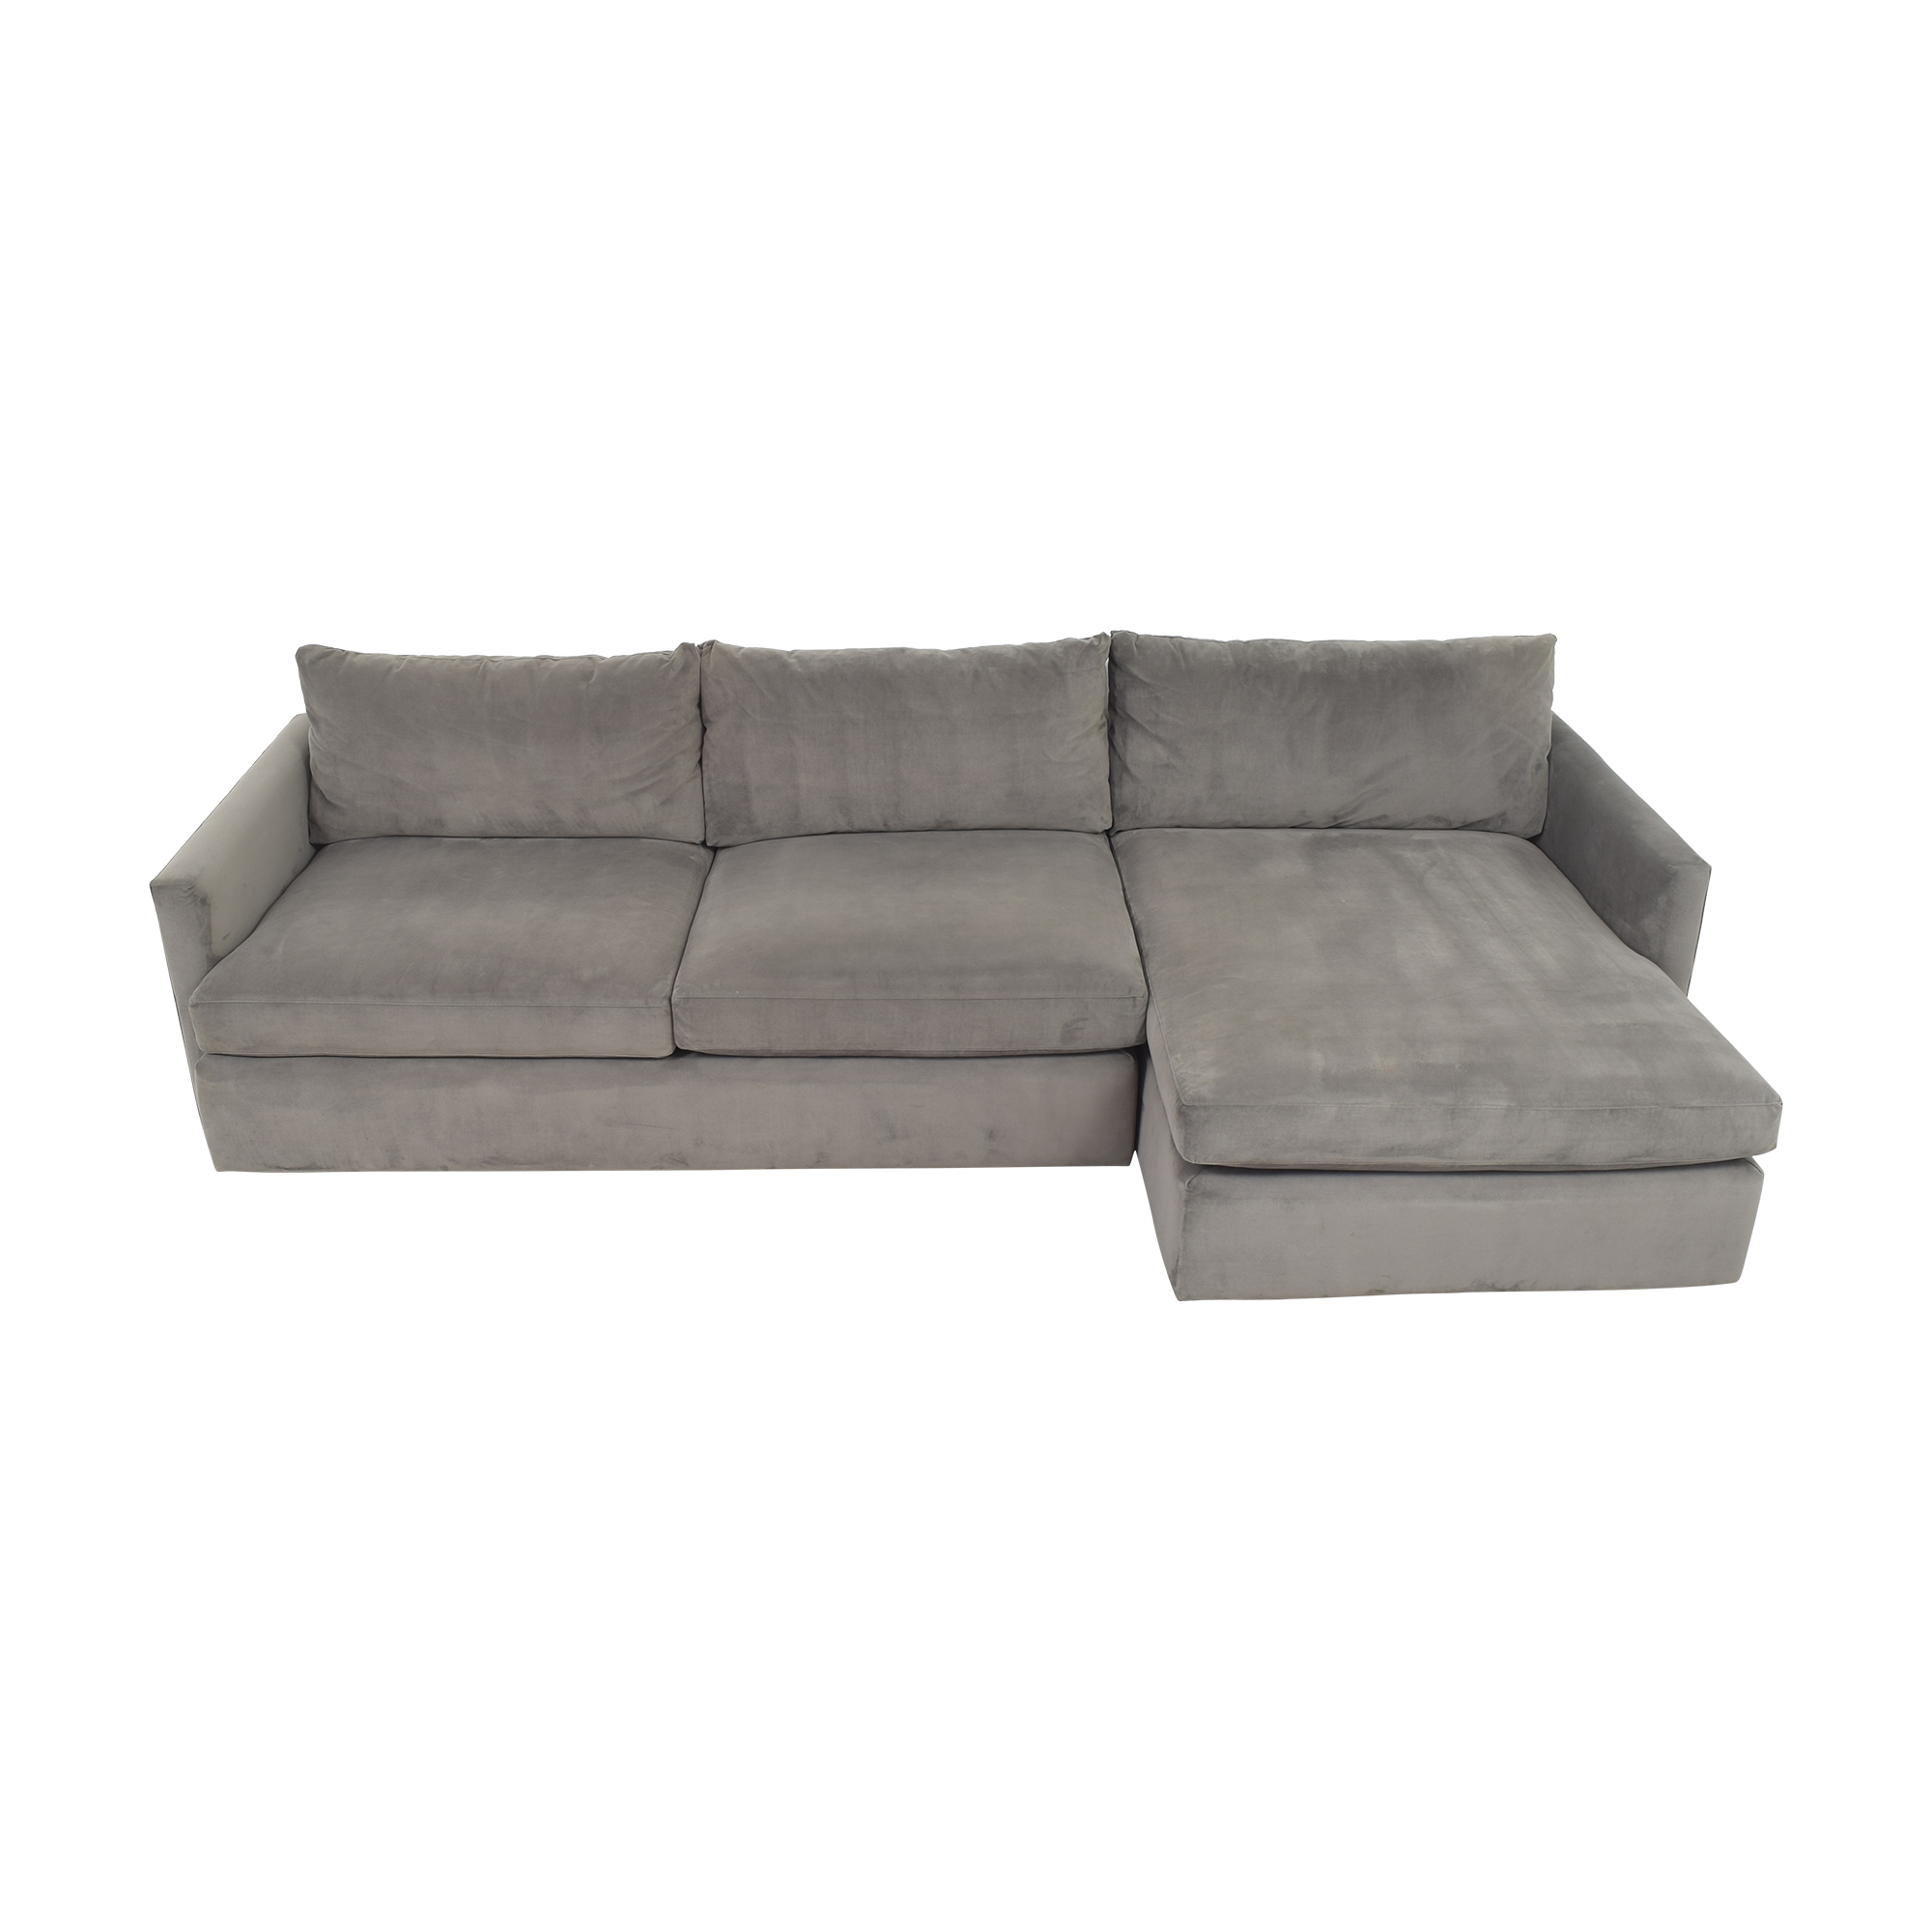 buy Crate & Barrel Lounge II Chaise Sectional Sofa Crate & Barrel Sofas